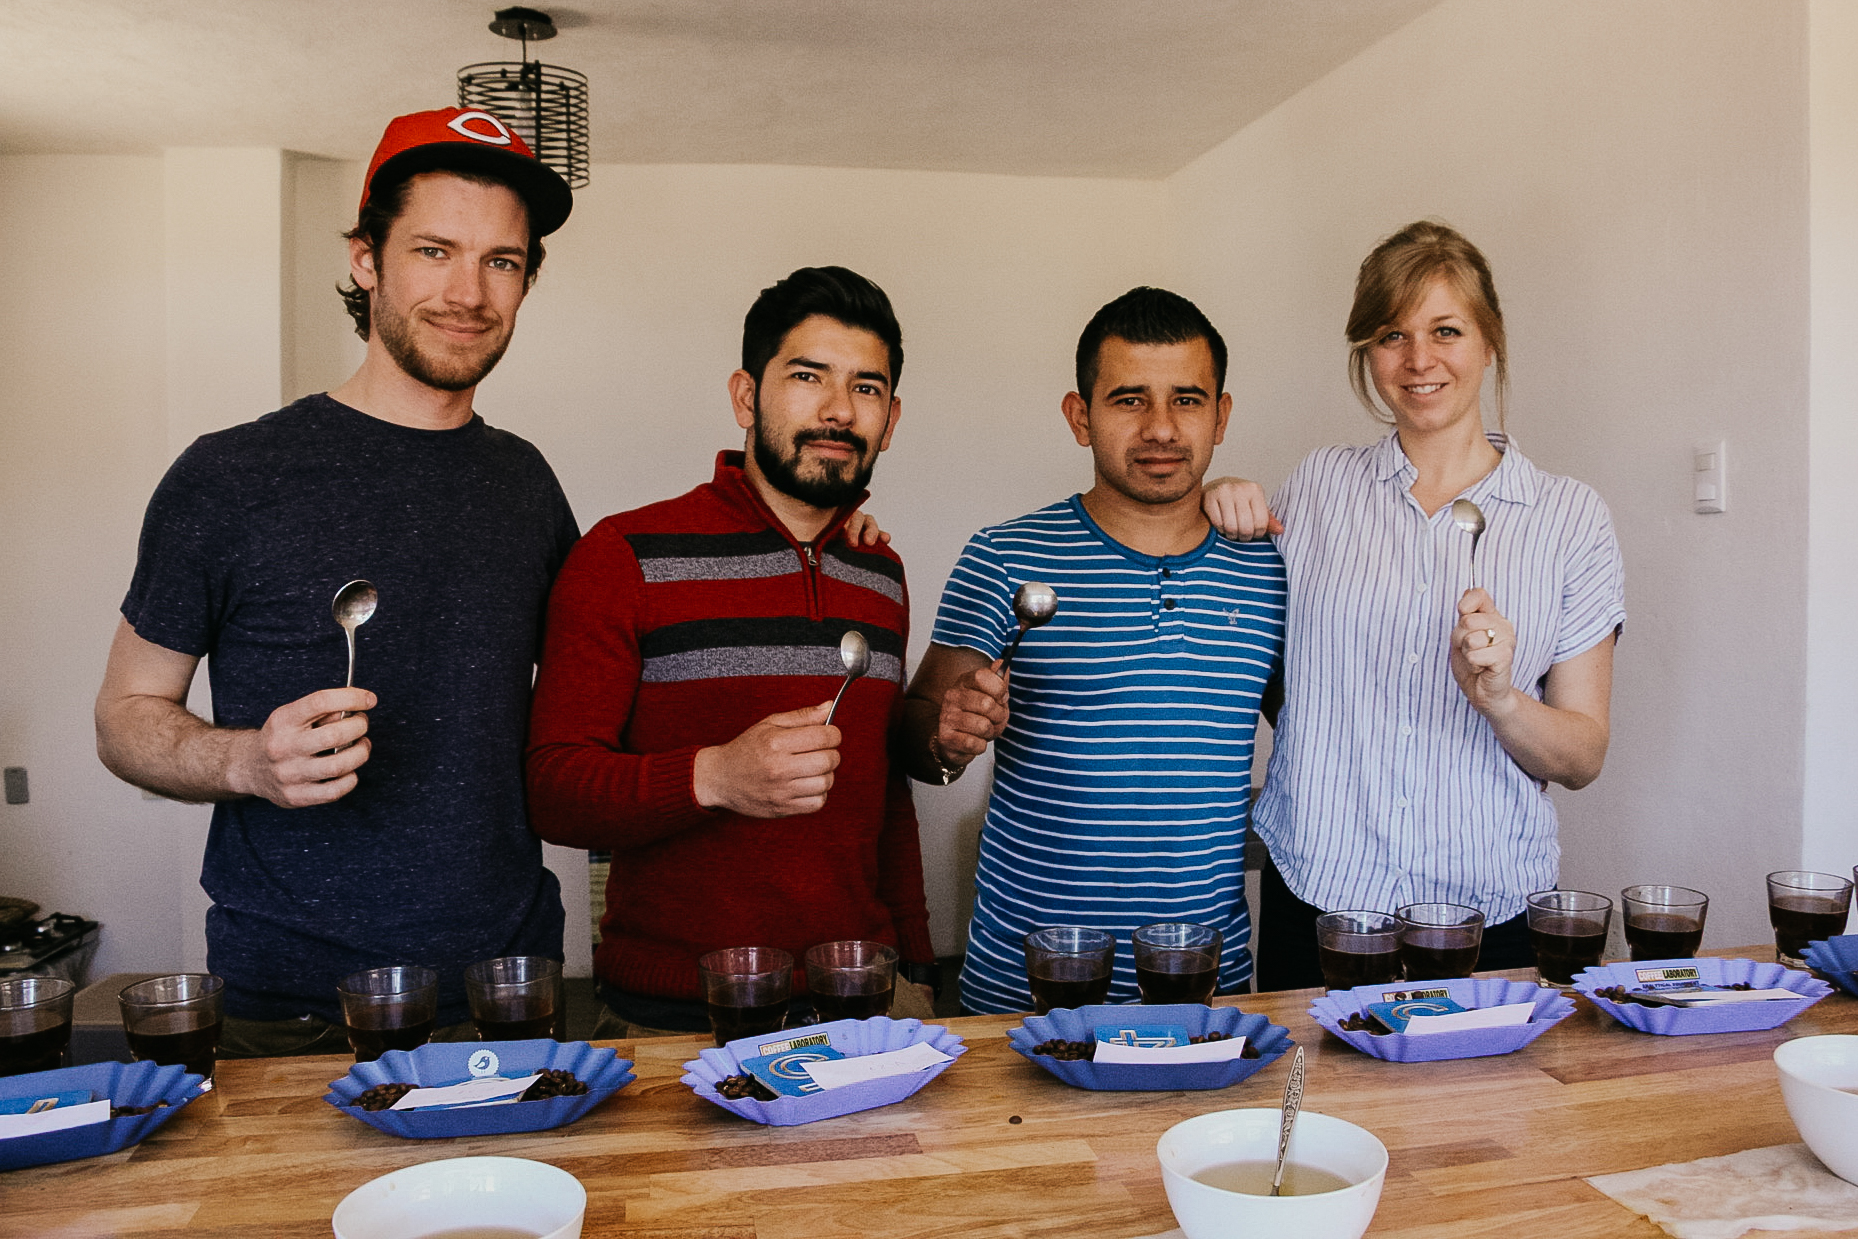 Showing off those spoons after our cupping.